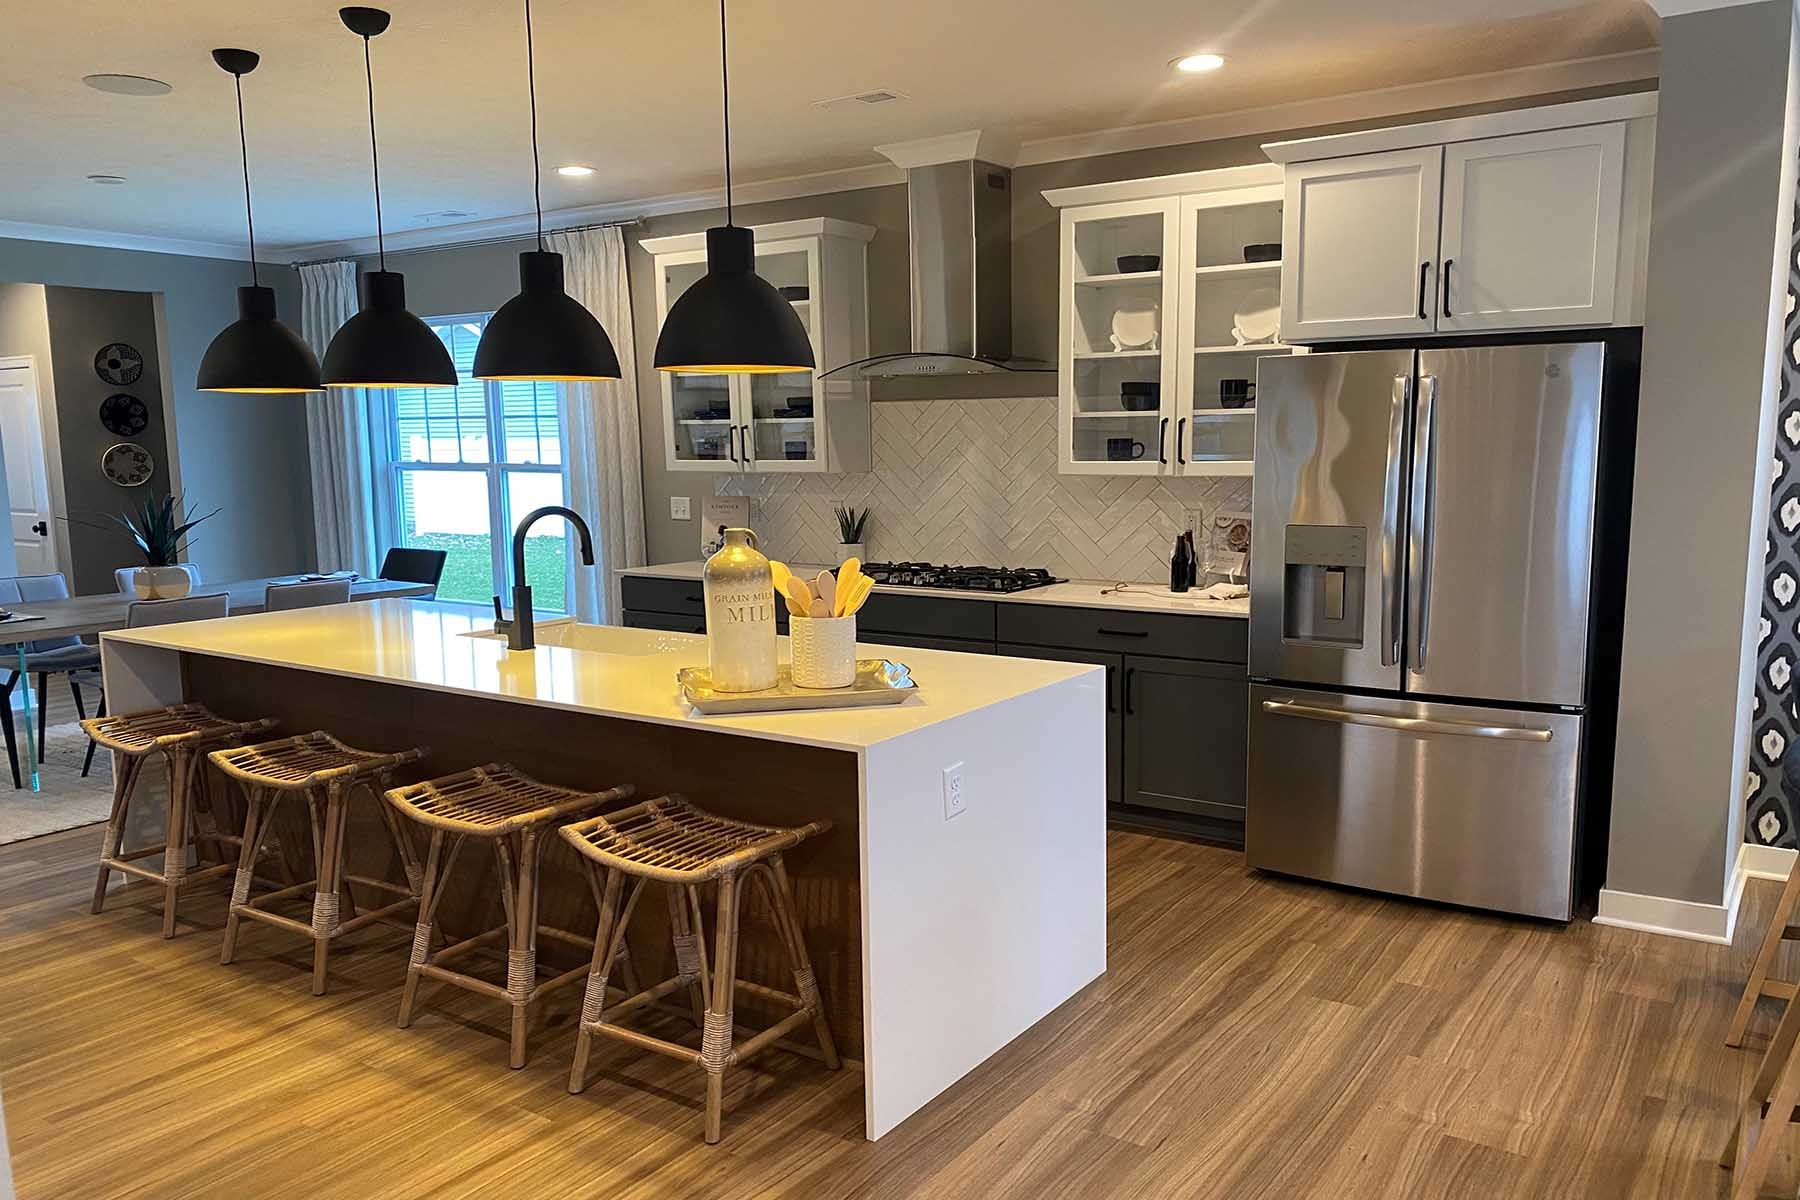 Kitchen featured in the R2050 By M/I Homes in Indianapolis, IN